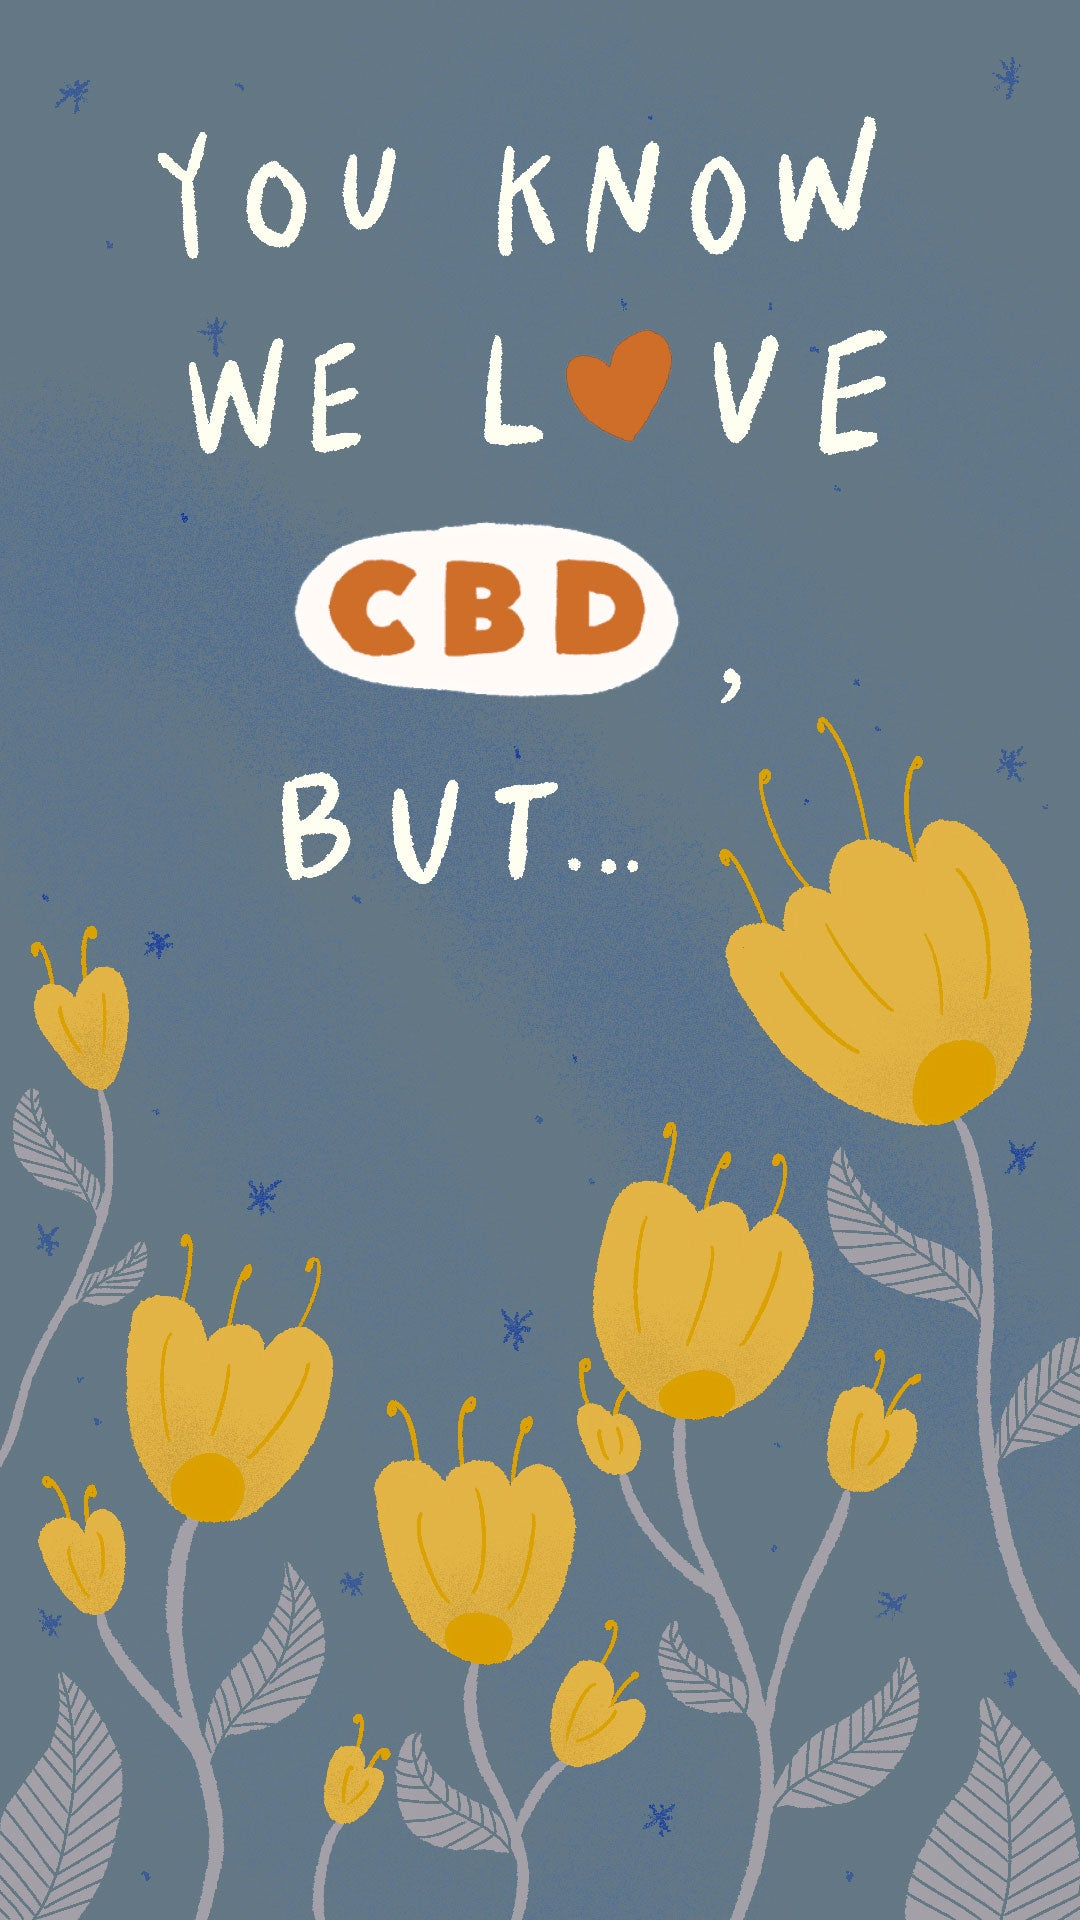 What's CBN - You know we love CBD, but...